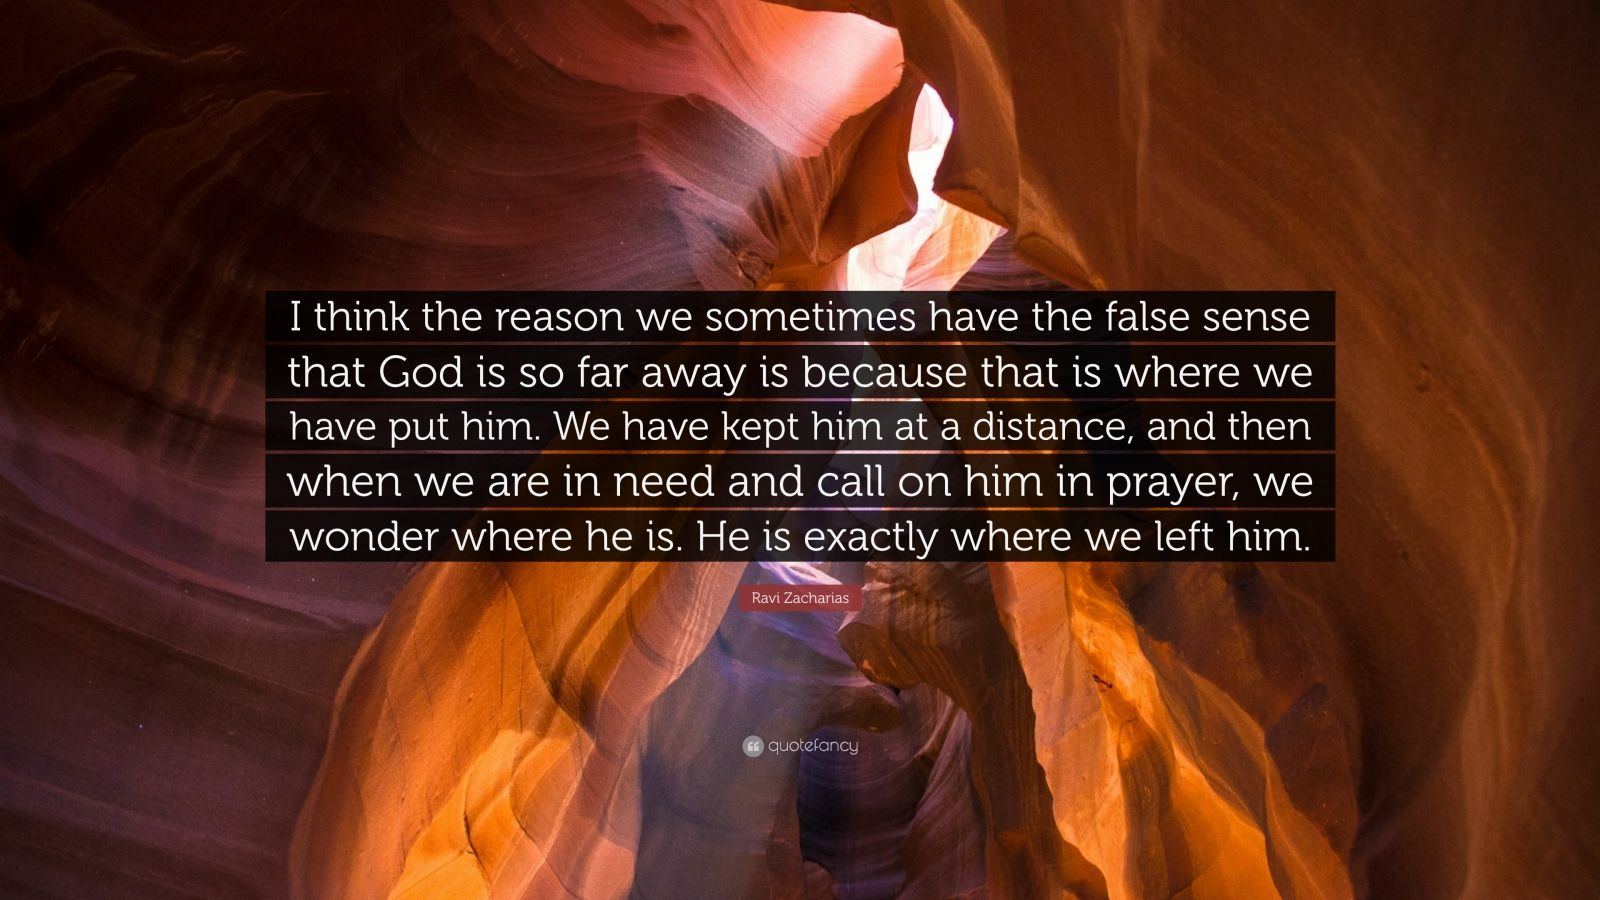 "Ravi Zacharias Quote: ""I think the reason we sometimes have the false sense that God is so far away is because that is where we have put him. We have kept him at a distance, and then when we are in need and call on him in prayer, we wonder where he is. He is exactly where we left him."""